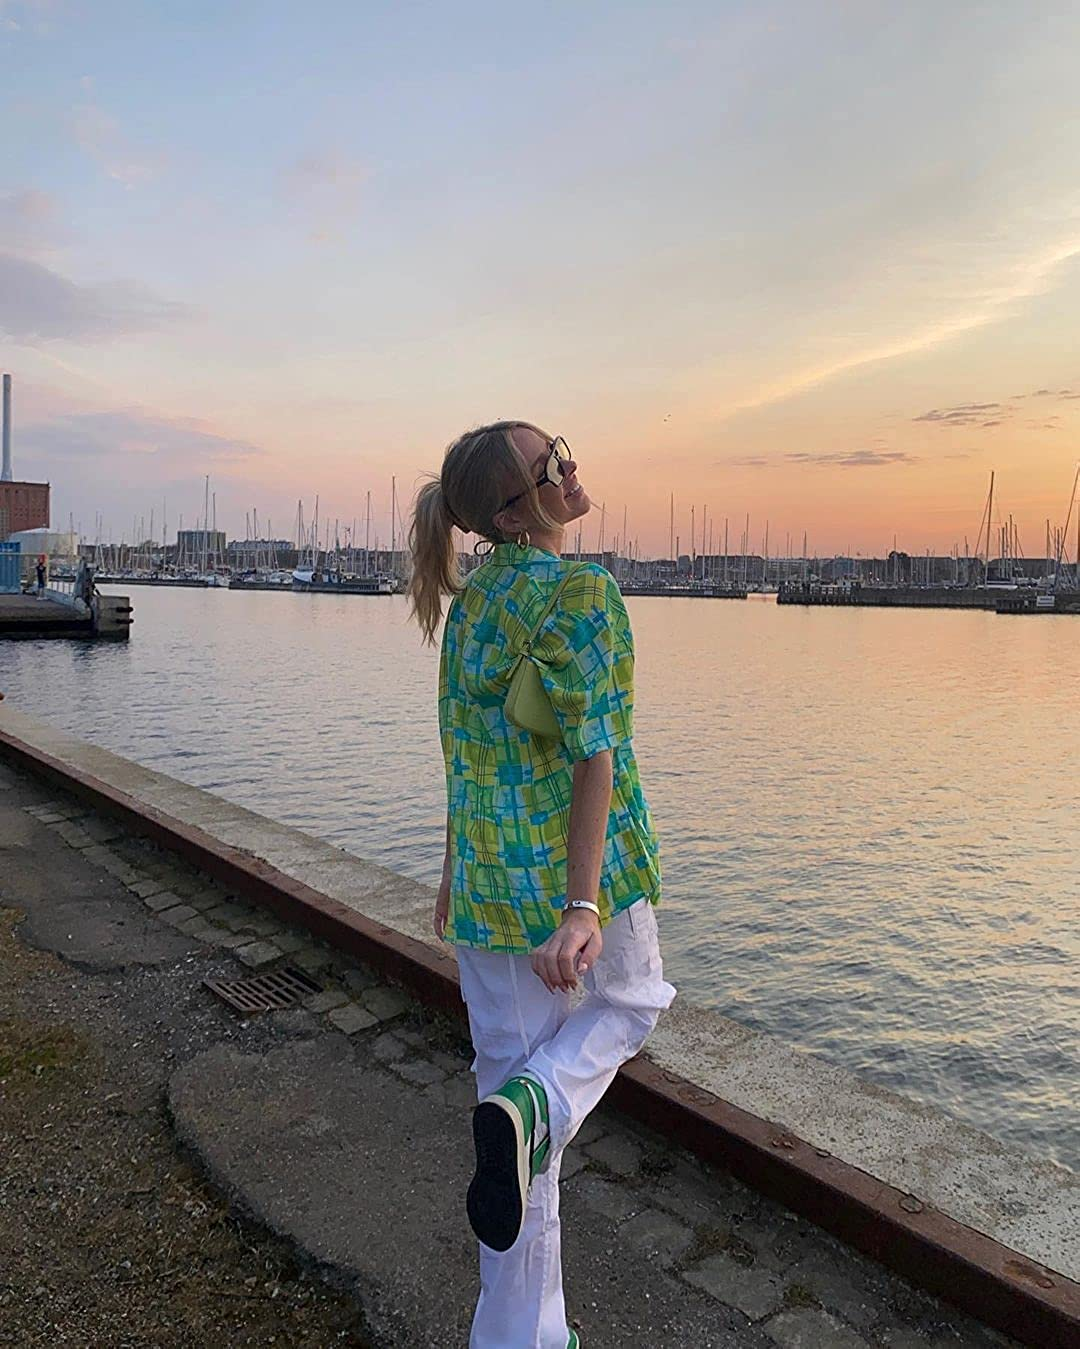 Women Short Sleeve Collared Button Down T Shirt Blouse Summer Y2k Cardigans Crop Tops Vintage Aesthetic Clothes